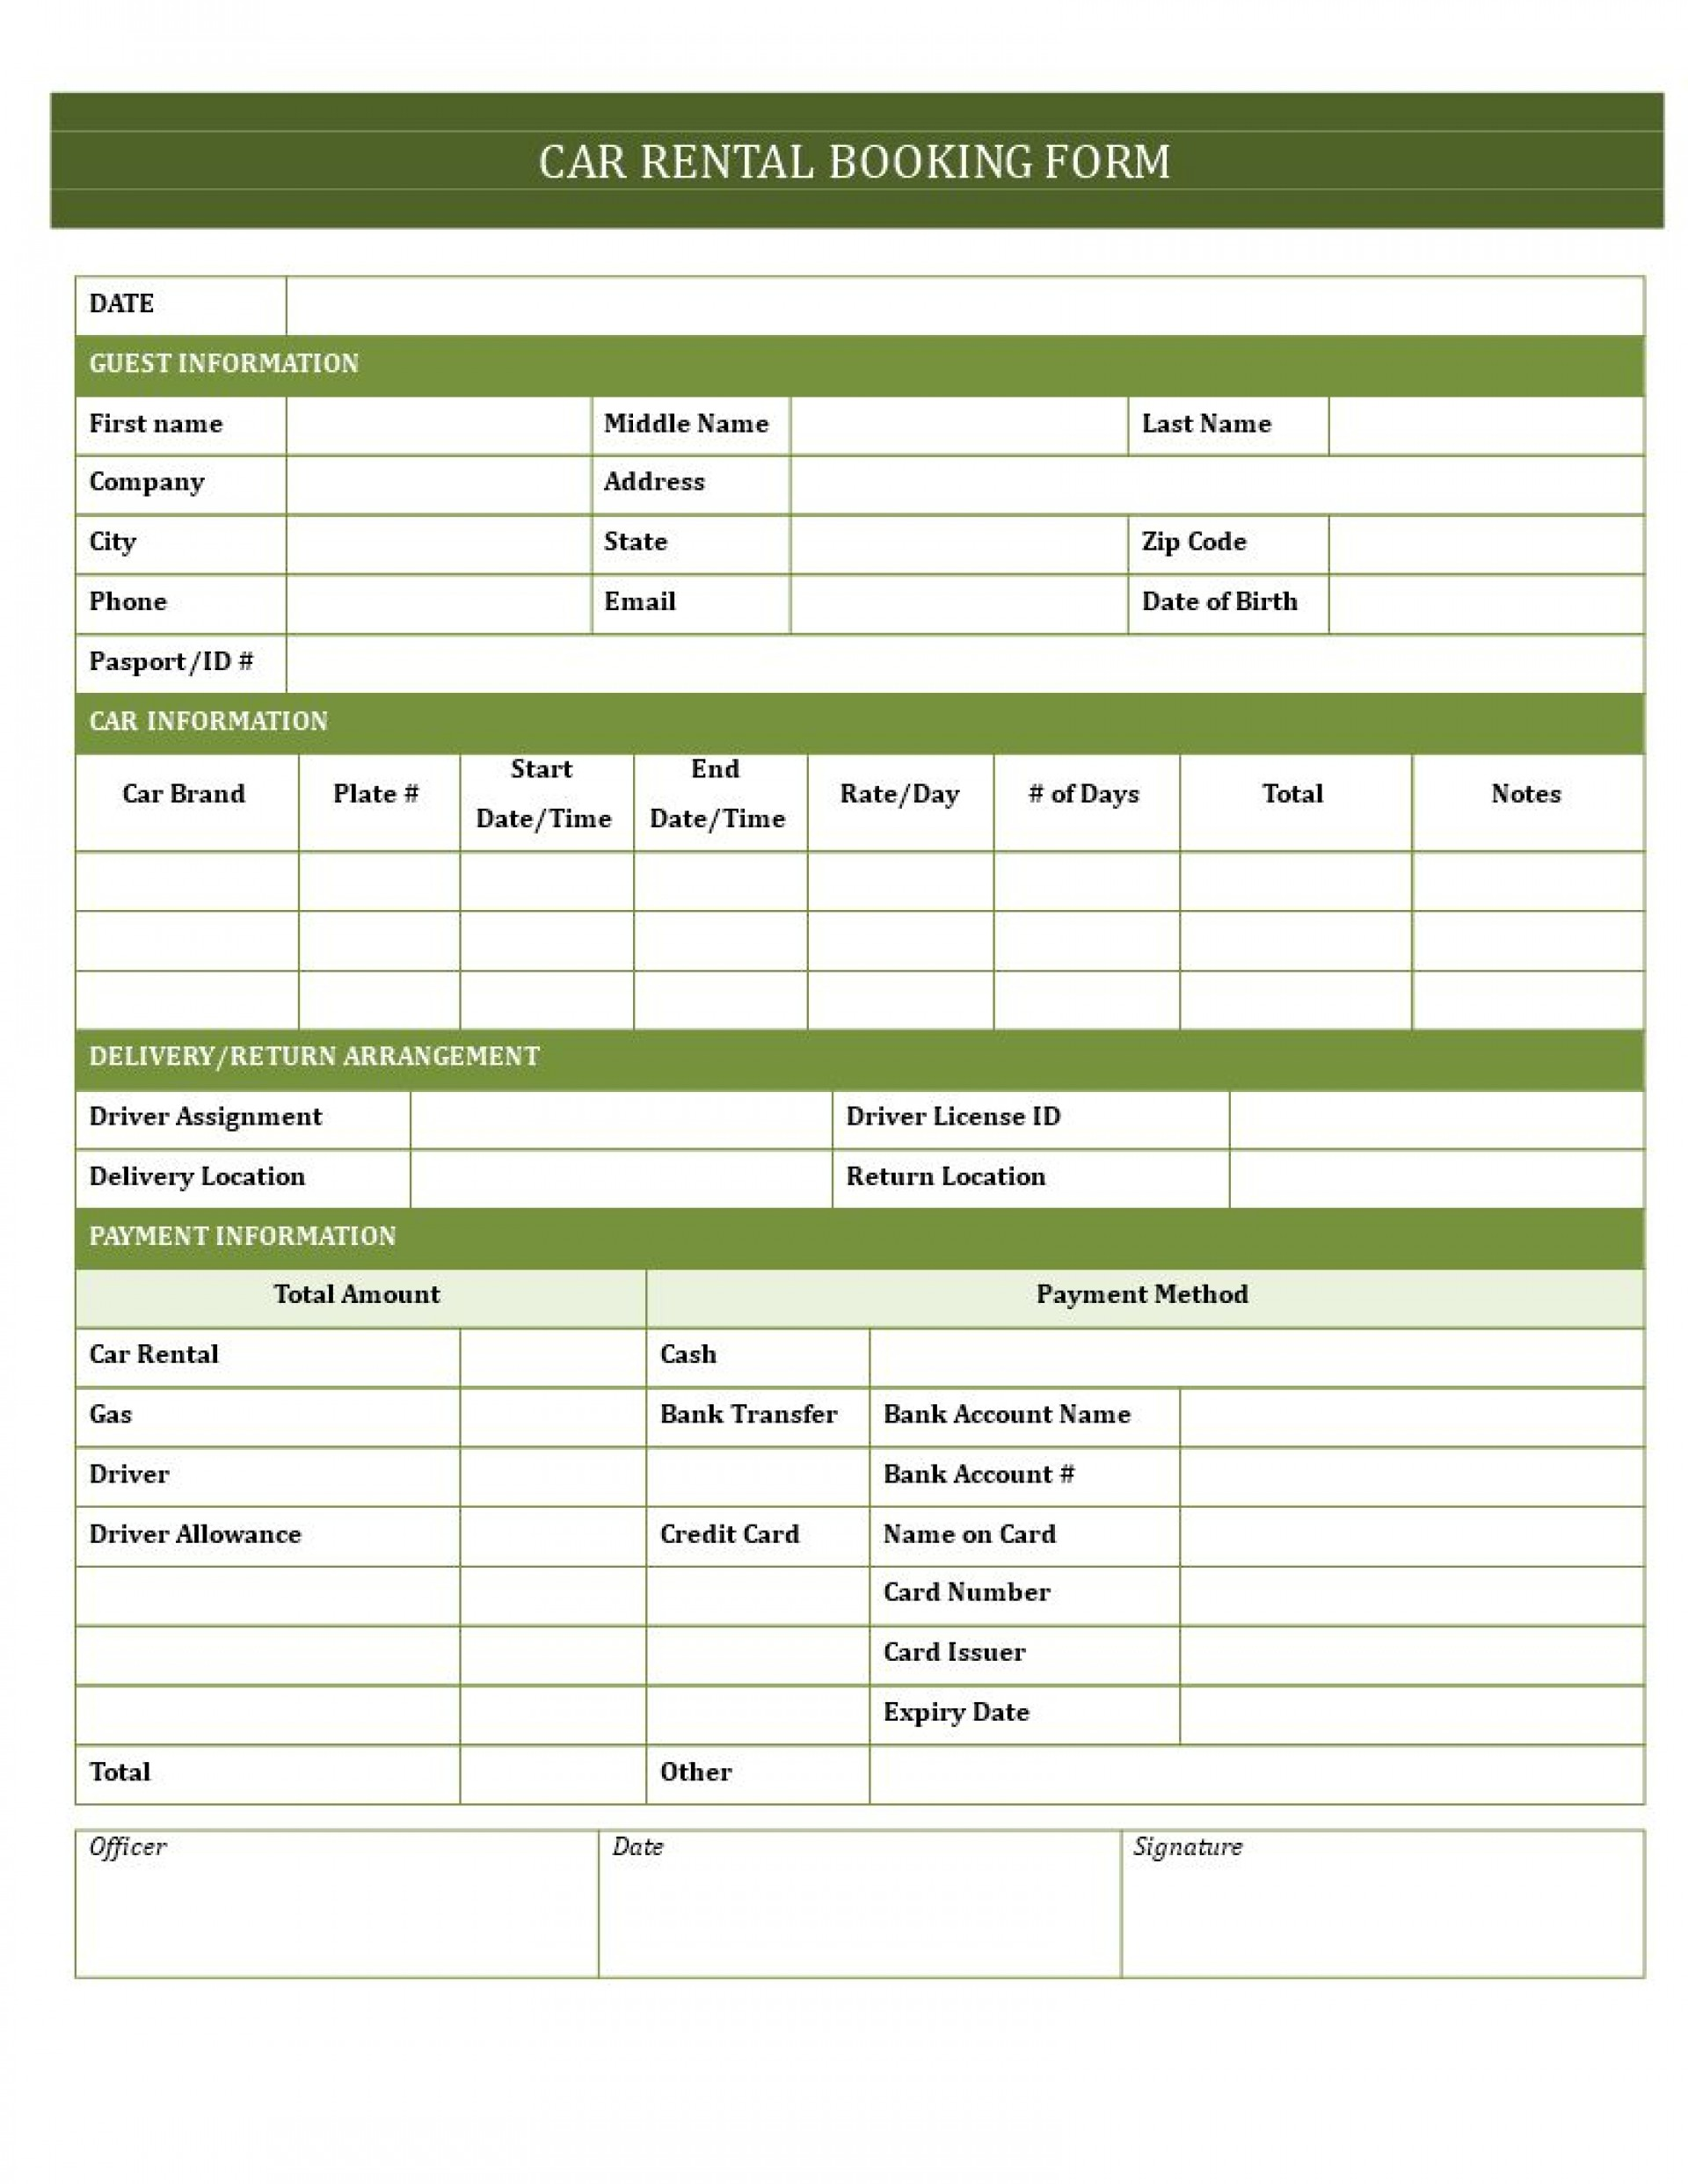 004 Wondrou Car Rental Agreement Template Sample  Vehicle Rent To Own South Africa Singapore1920